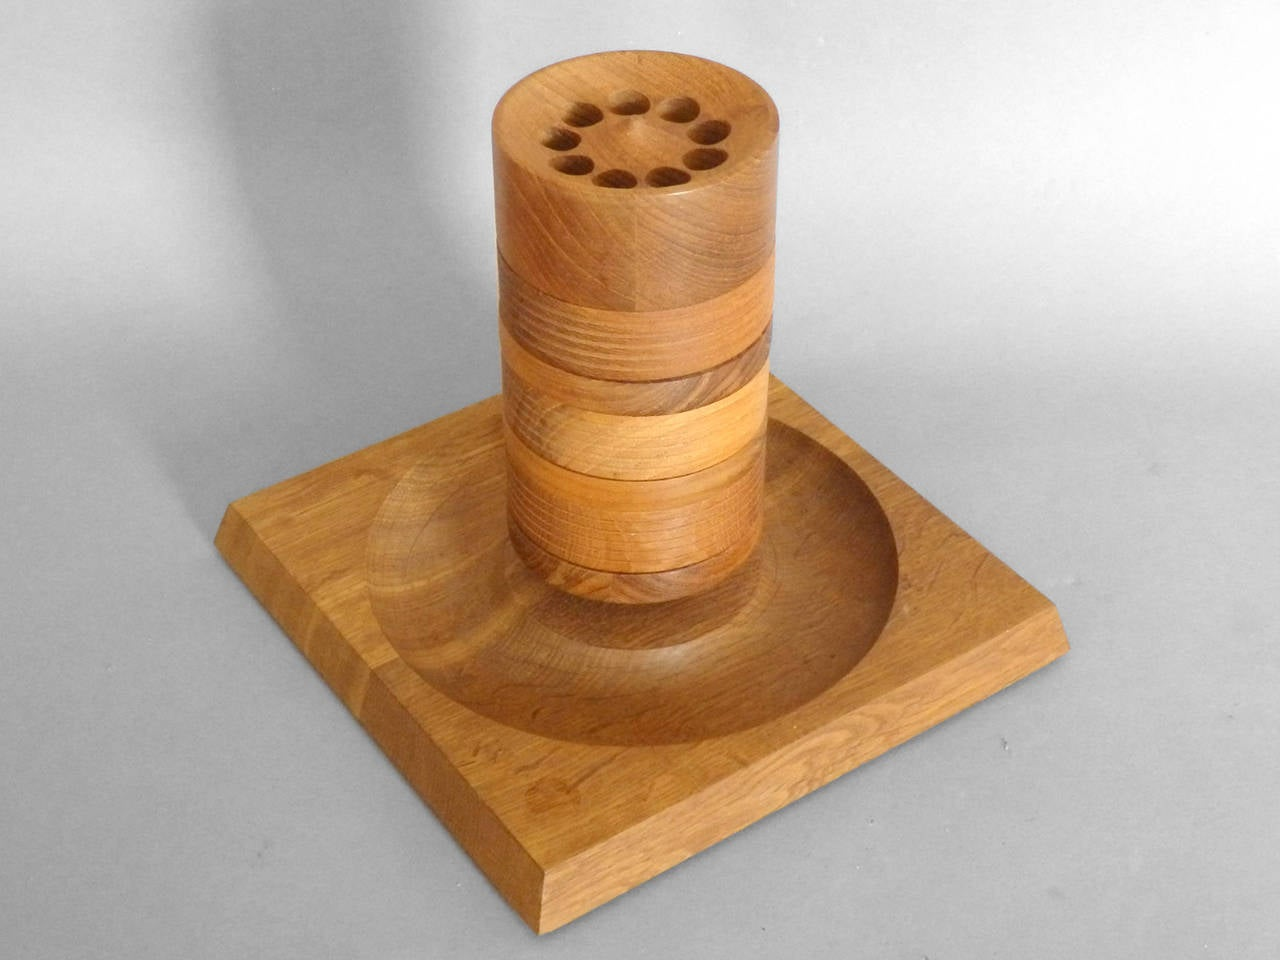 Turned Wood Danish Teak Tower Game by Skjode Skjern Base 9.5  Wide x 9.5  Deep x 8 Tall -  Column 3.75 Diameter There are some balls missing from the game .